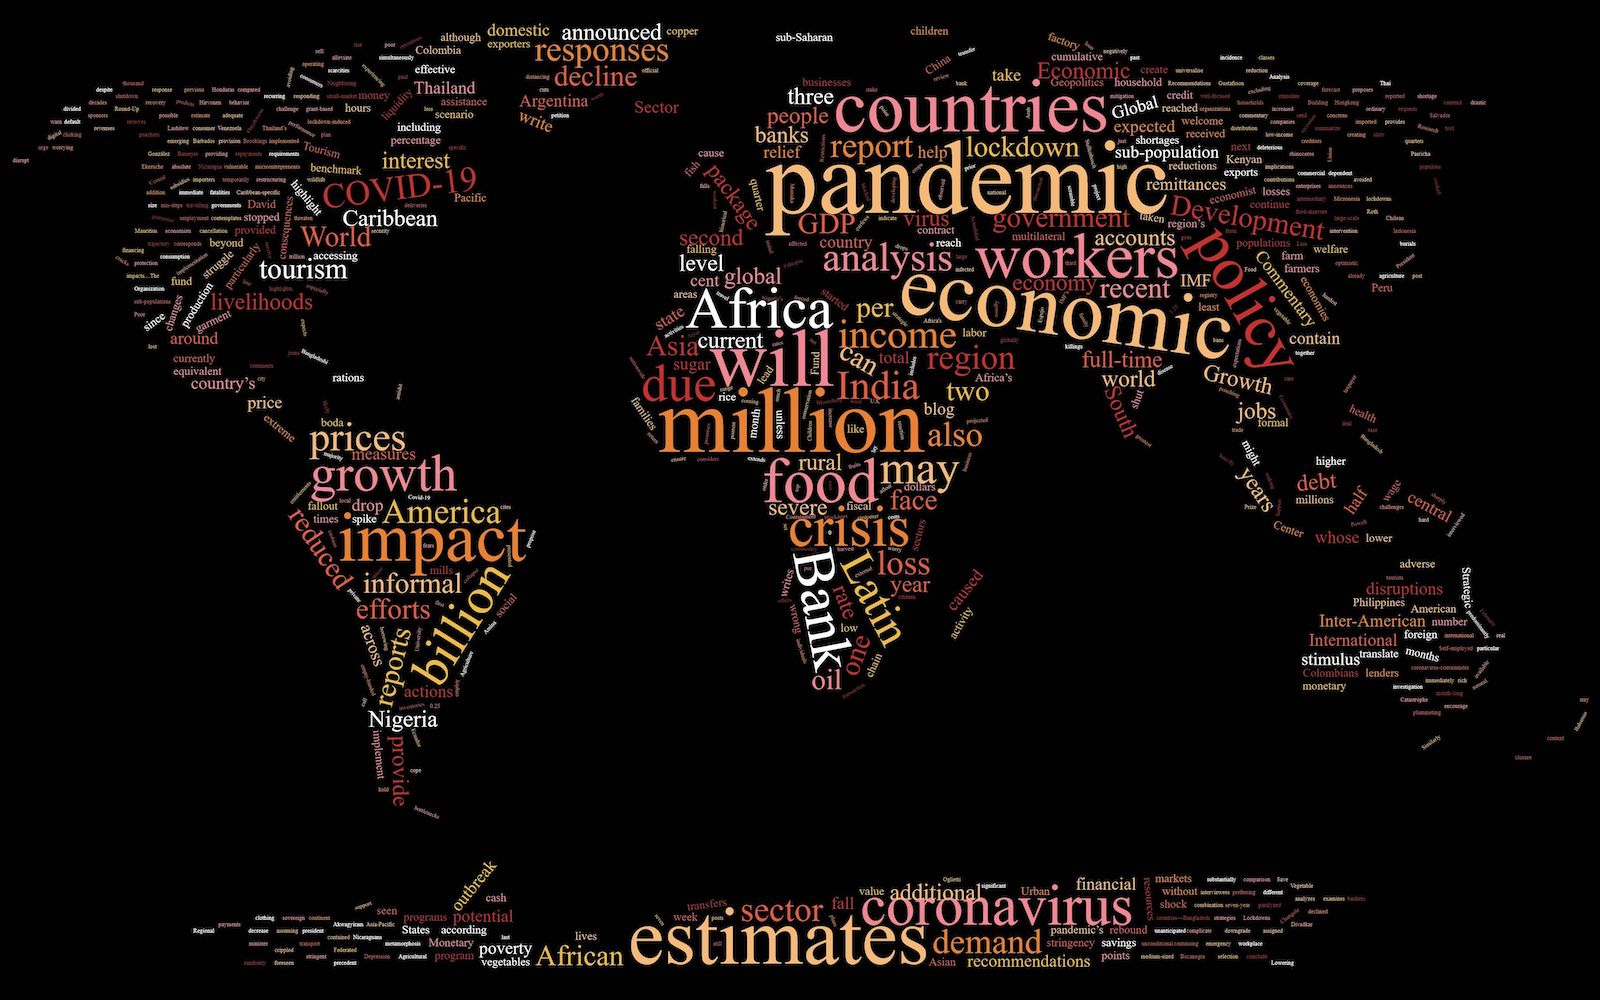 A word cloud of the most common words in the articles below, shaped like the world